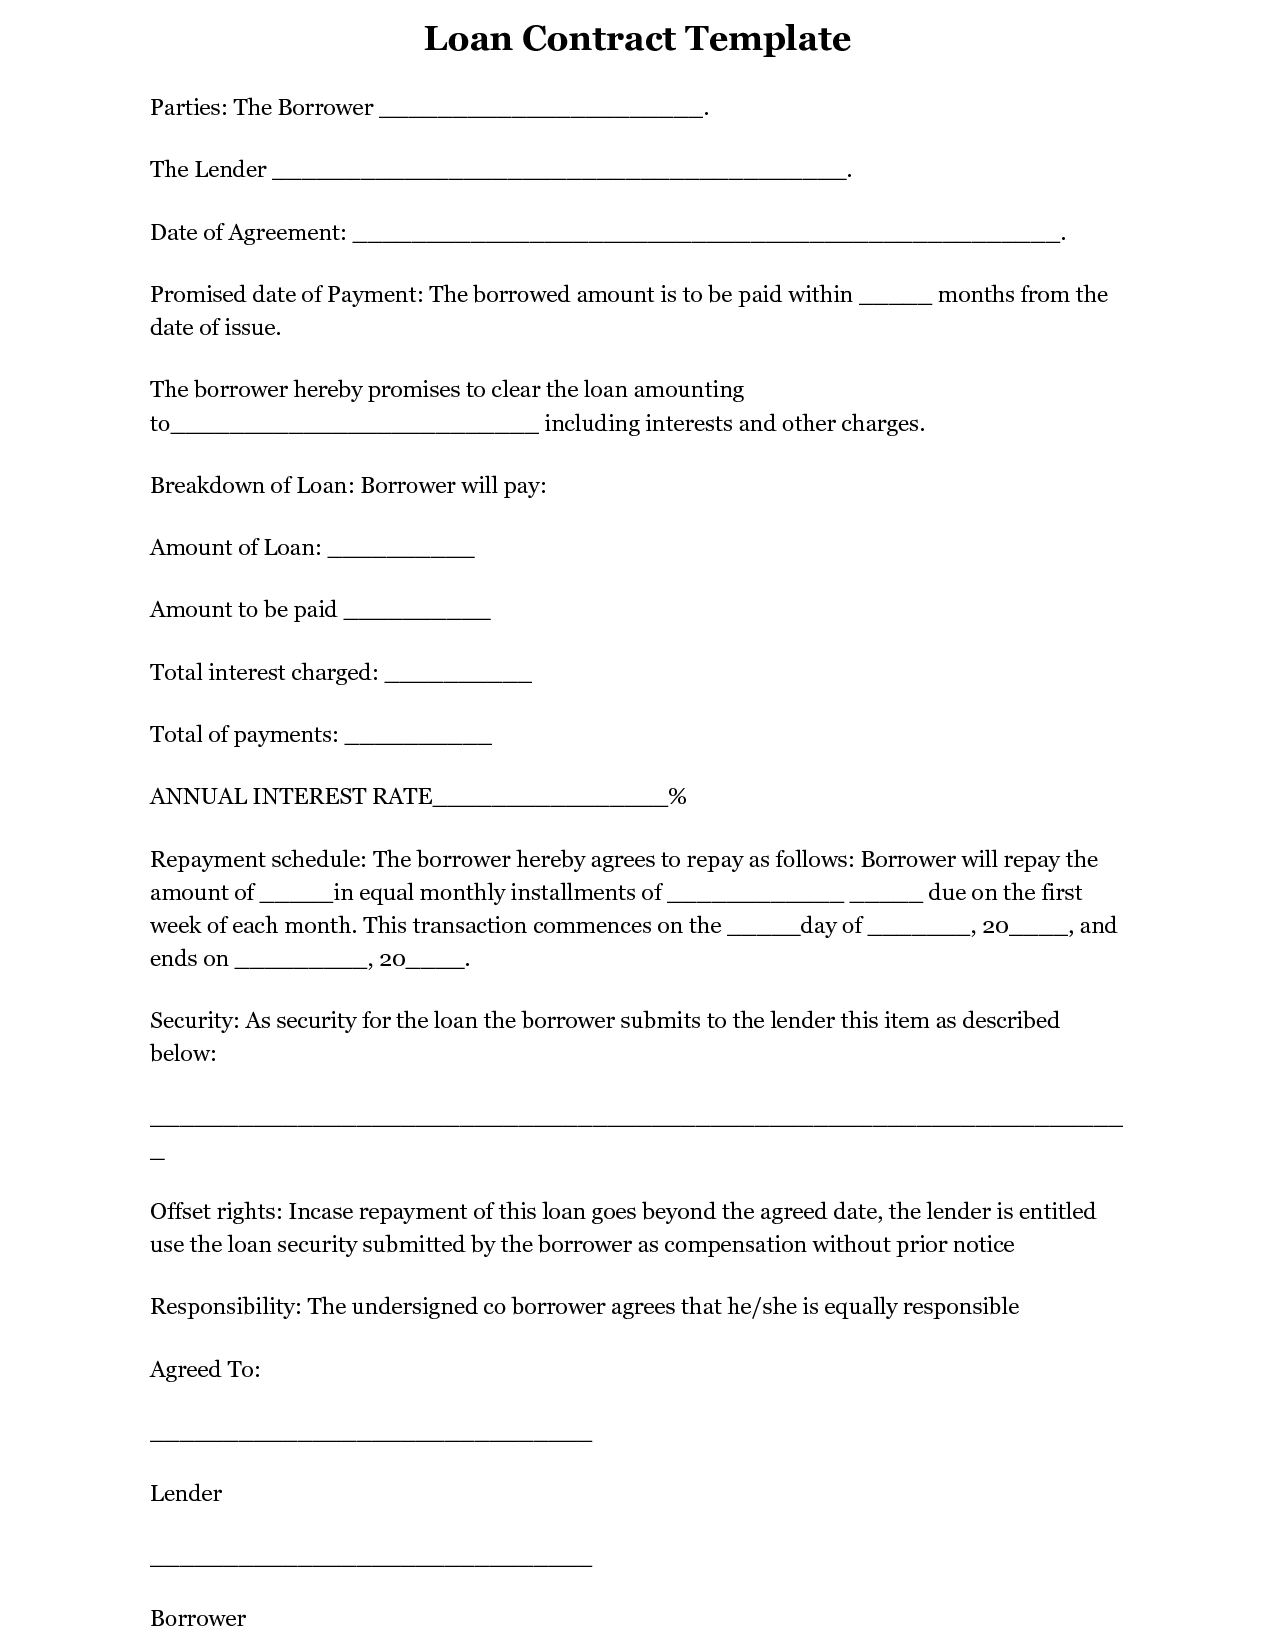 Perfect Simple Interest Loan Agreement Template | Koco Yhinoha   Simple Loan  Contract  Loan Templates